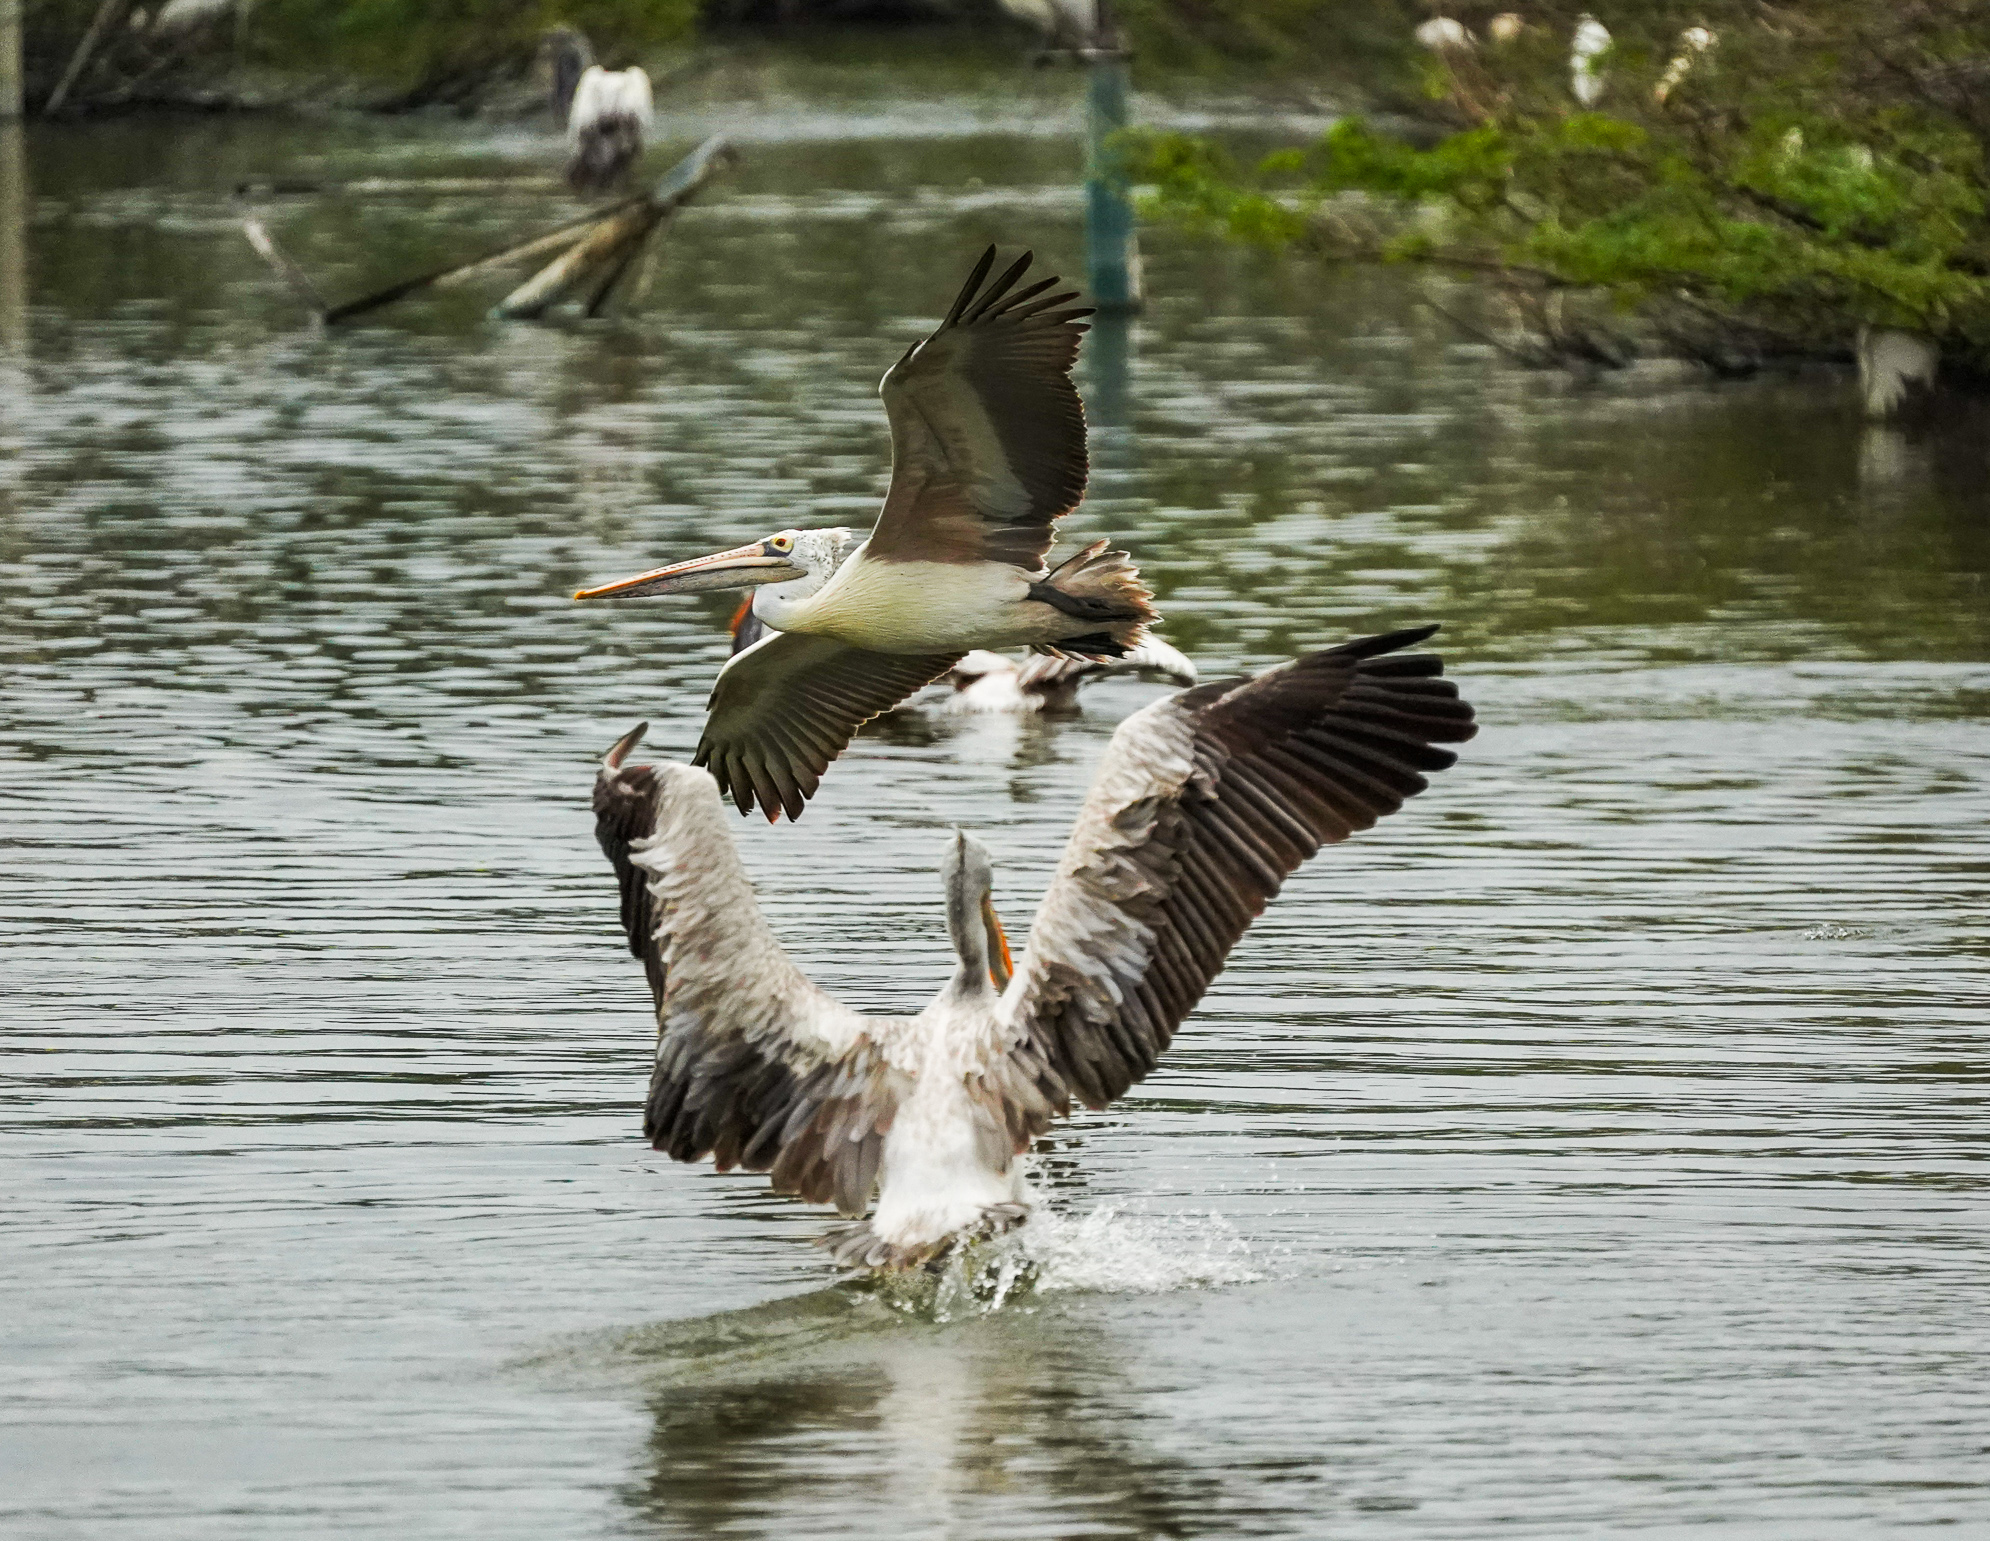 At the End of the day, Got a chance to freeze the motion between Two pelicans taking different flights and takeoffs at Uppalapadu Bird sanctuary, Andhra Pradesh.